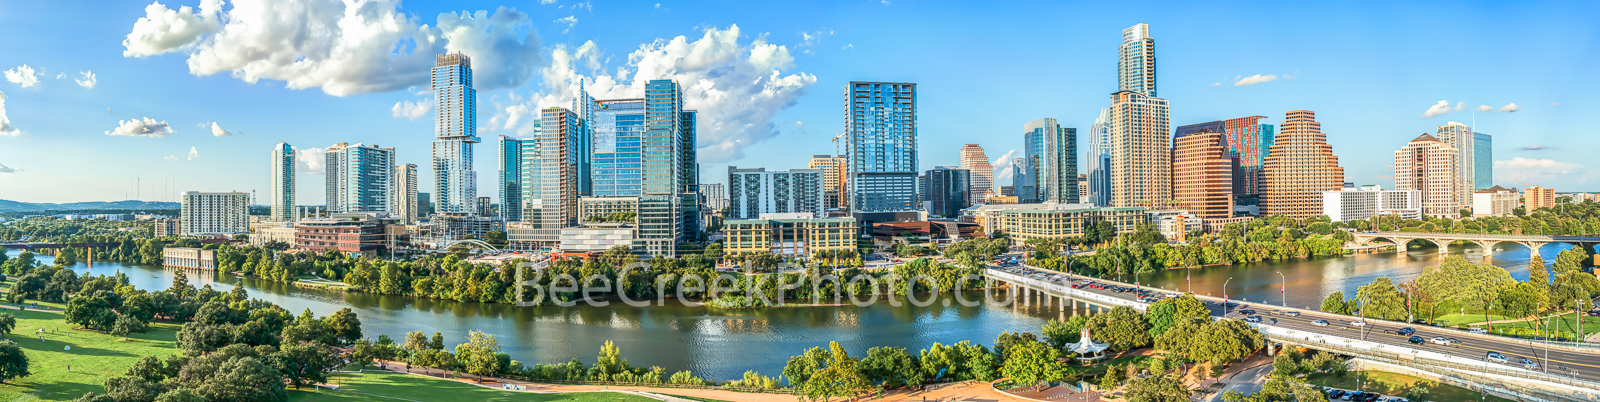 This is an extra large 4 to 1 pano of the Austin Skyline.  May need some cropping. Please contact us for pricing.